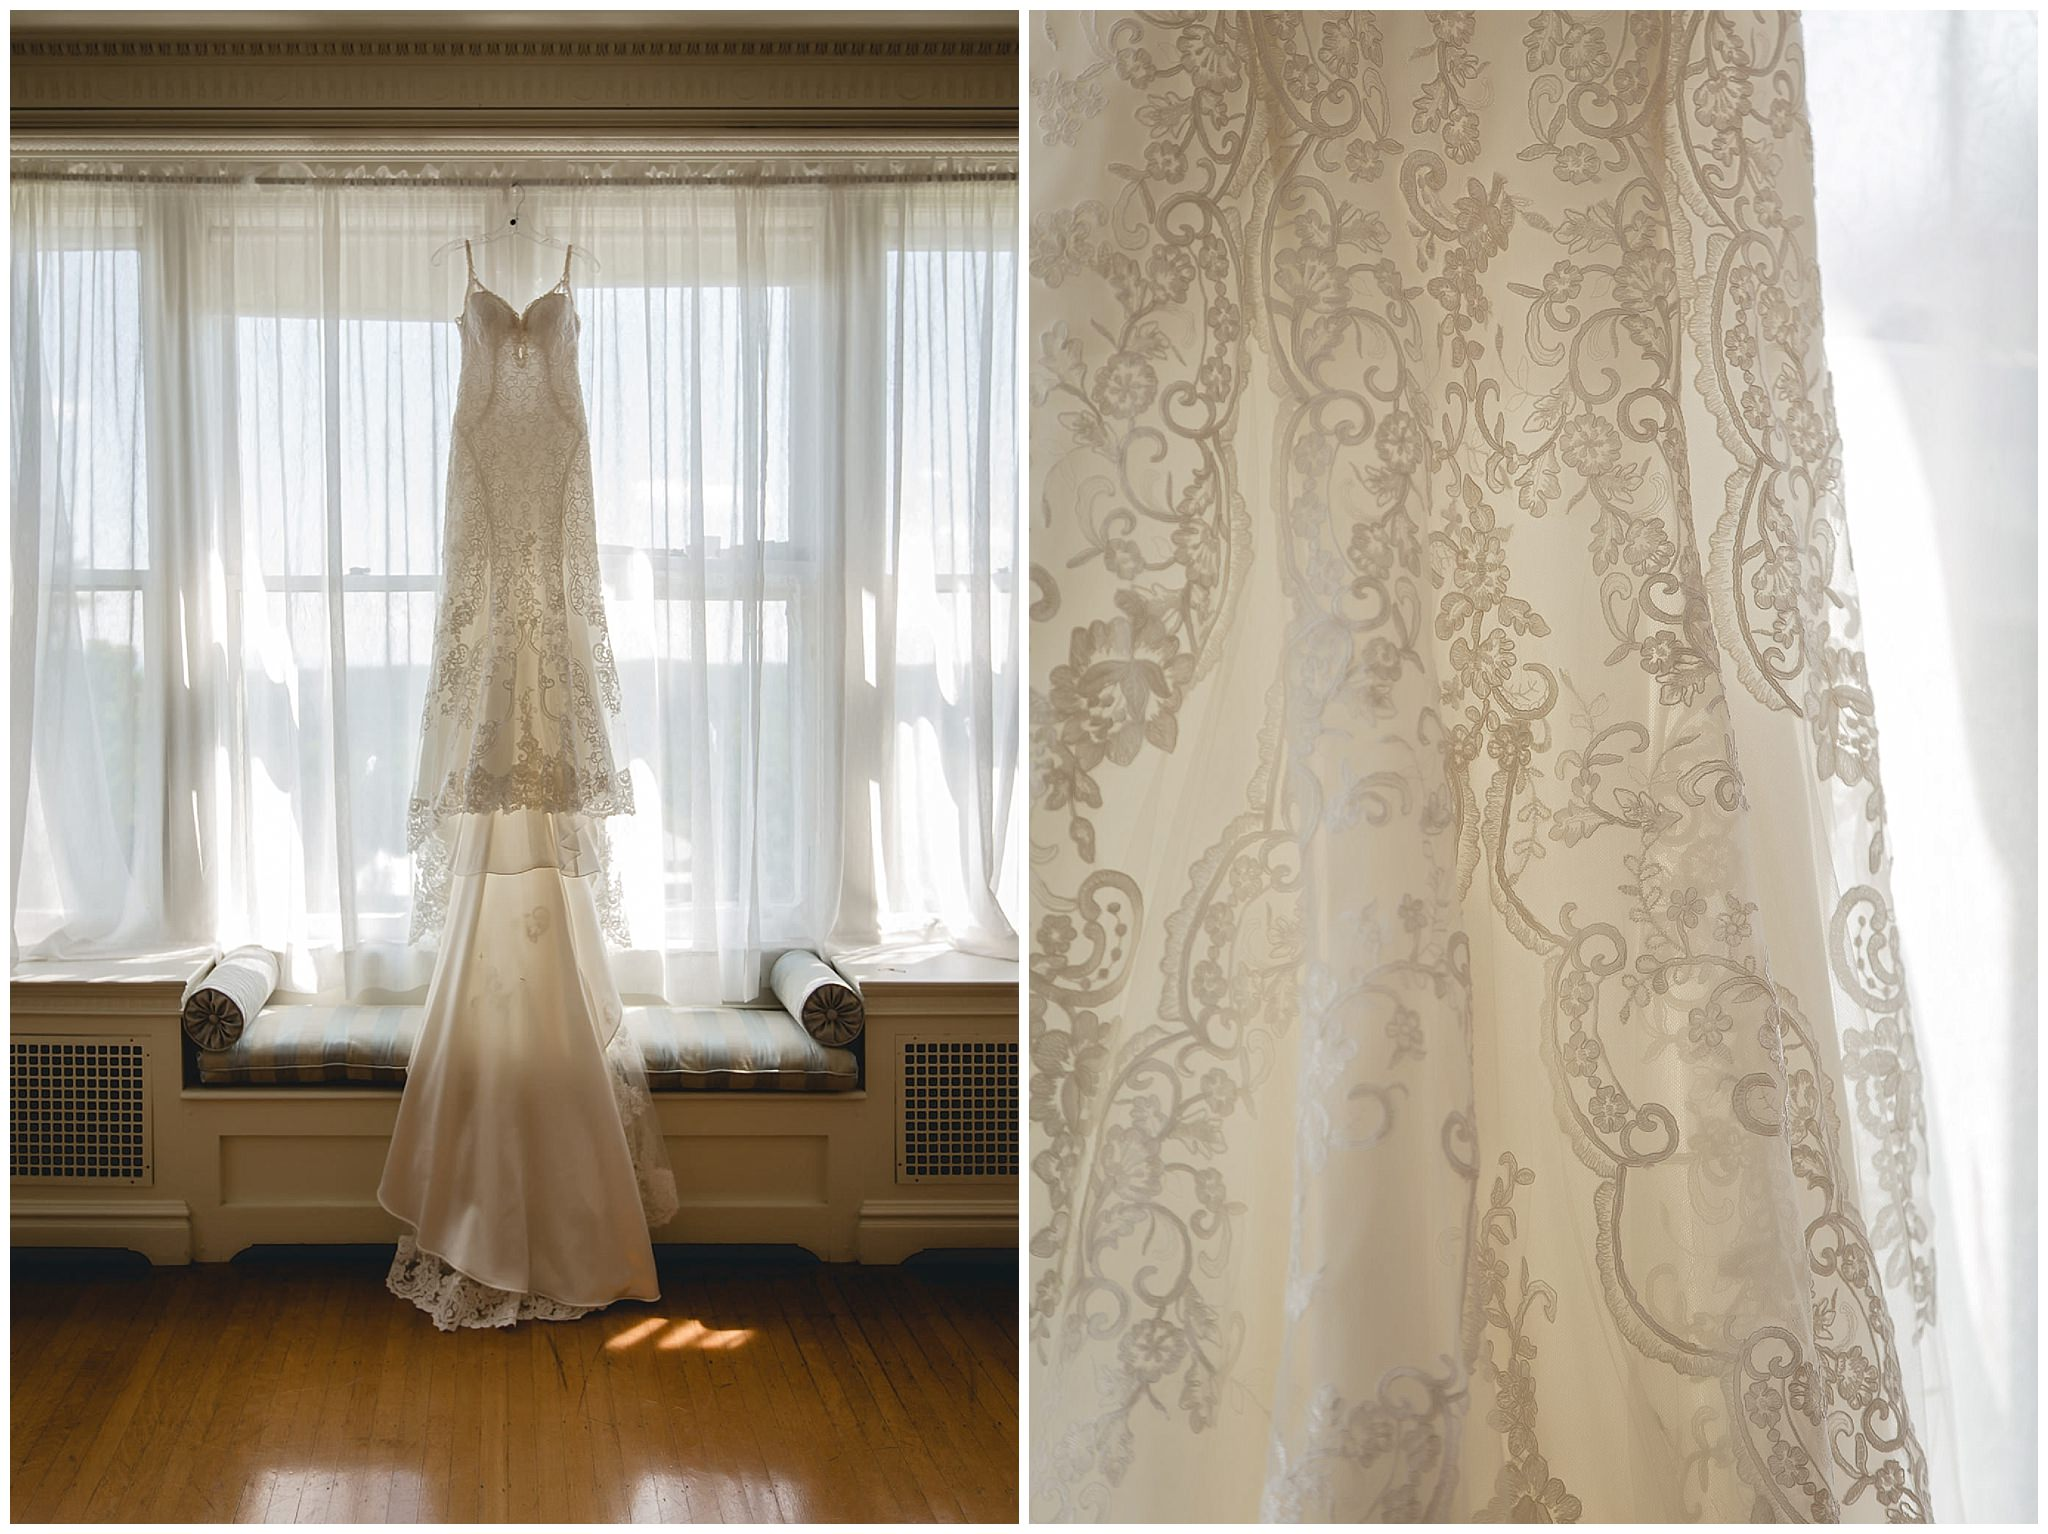 a3983bf2c66 Bride s lace wedding dress hangs in the window at Linden Hall